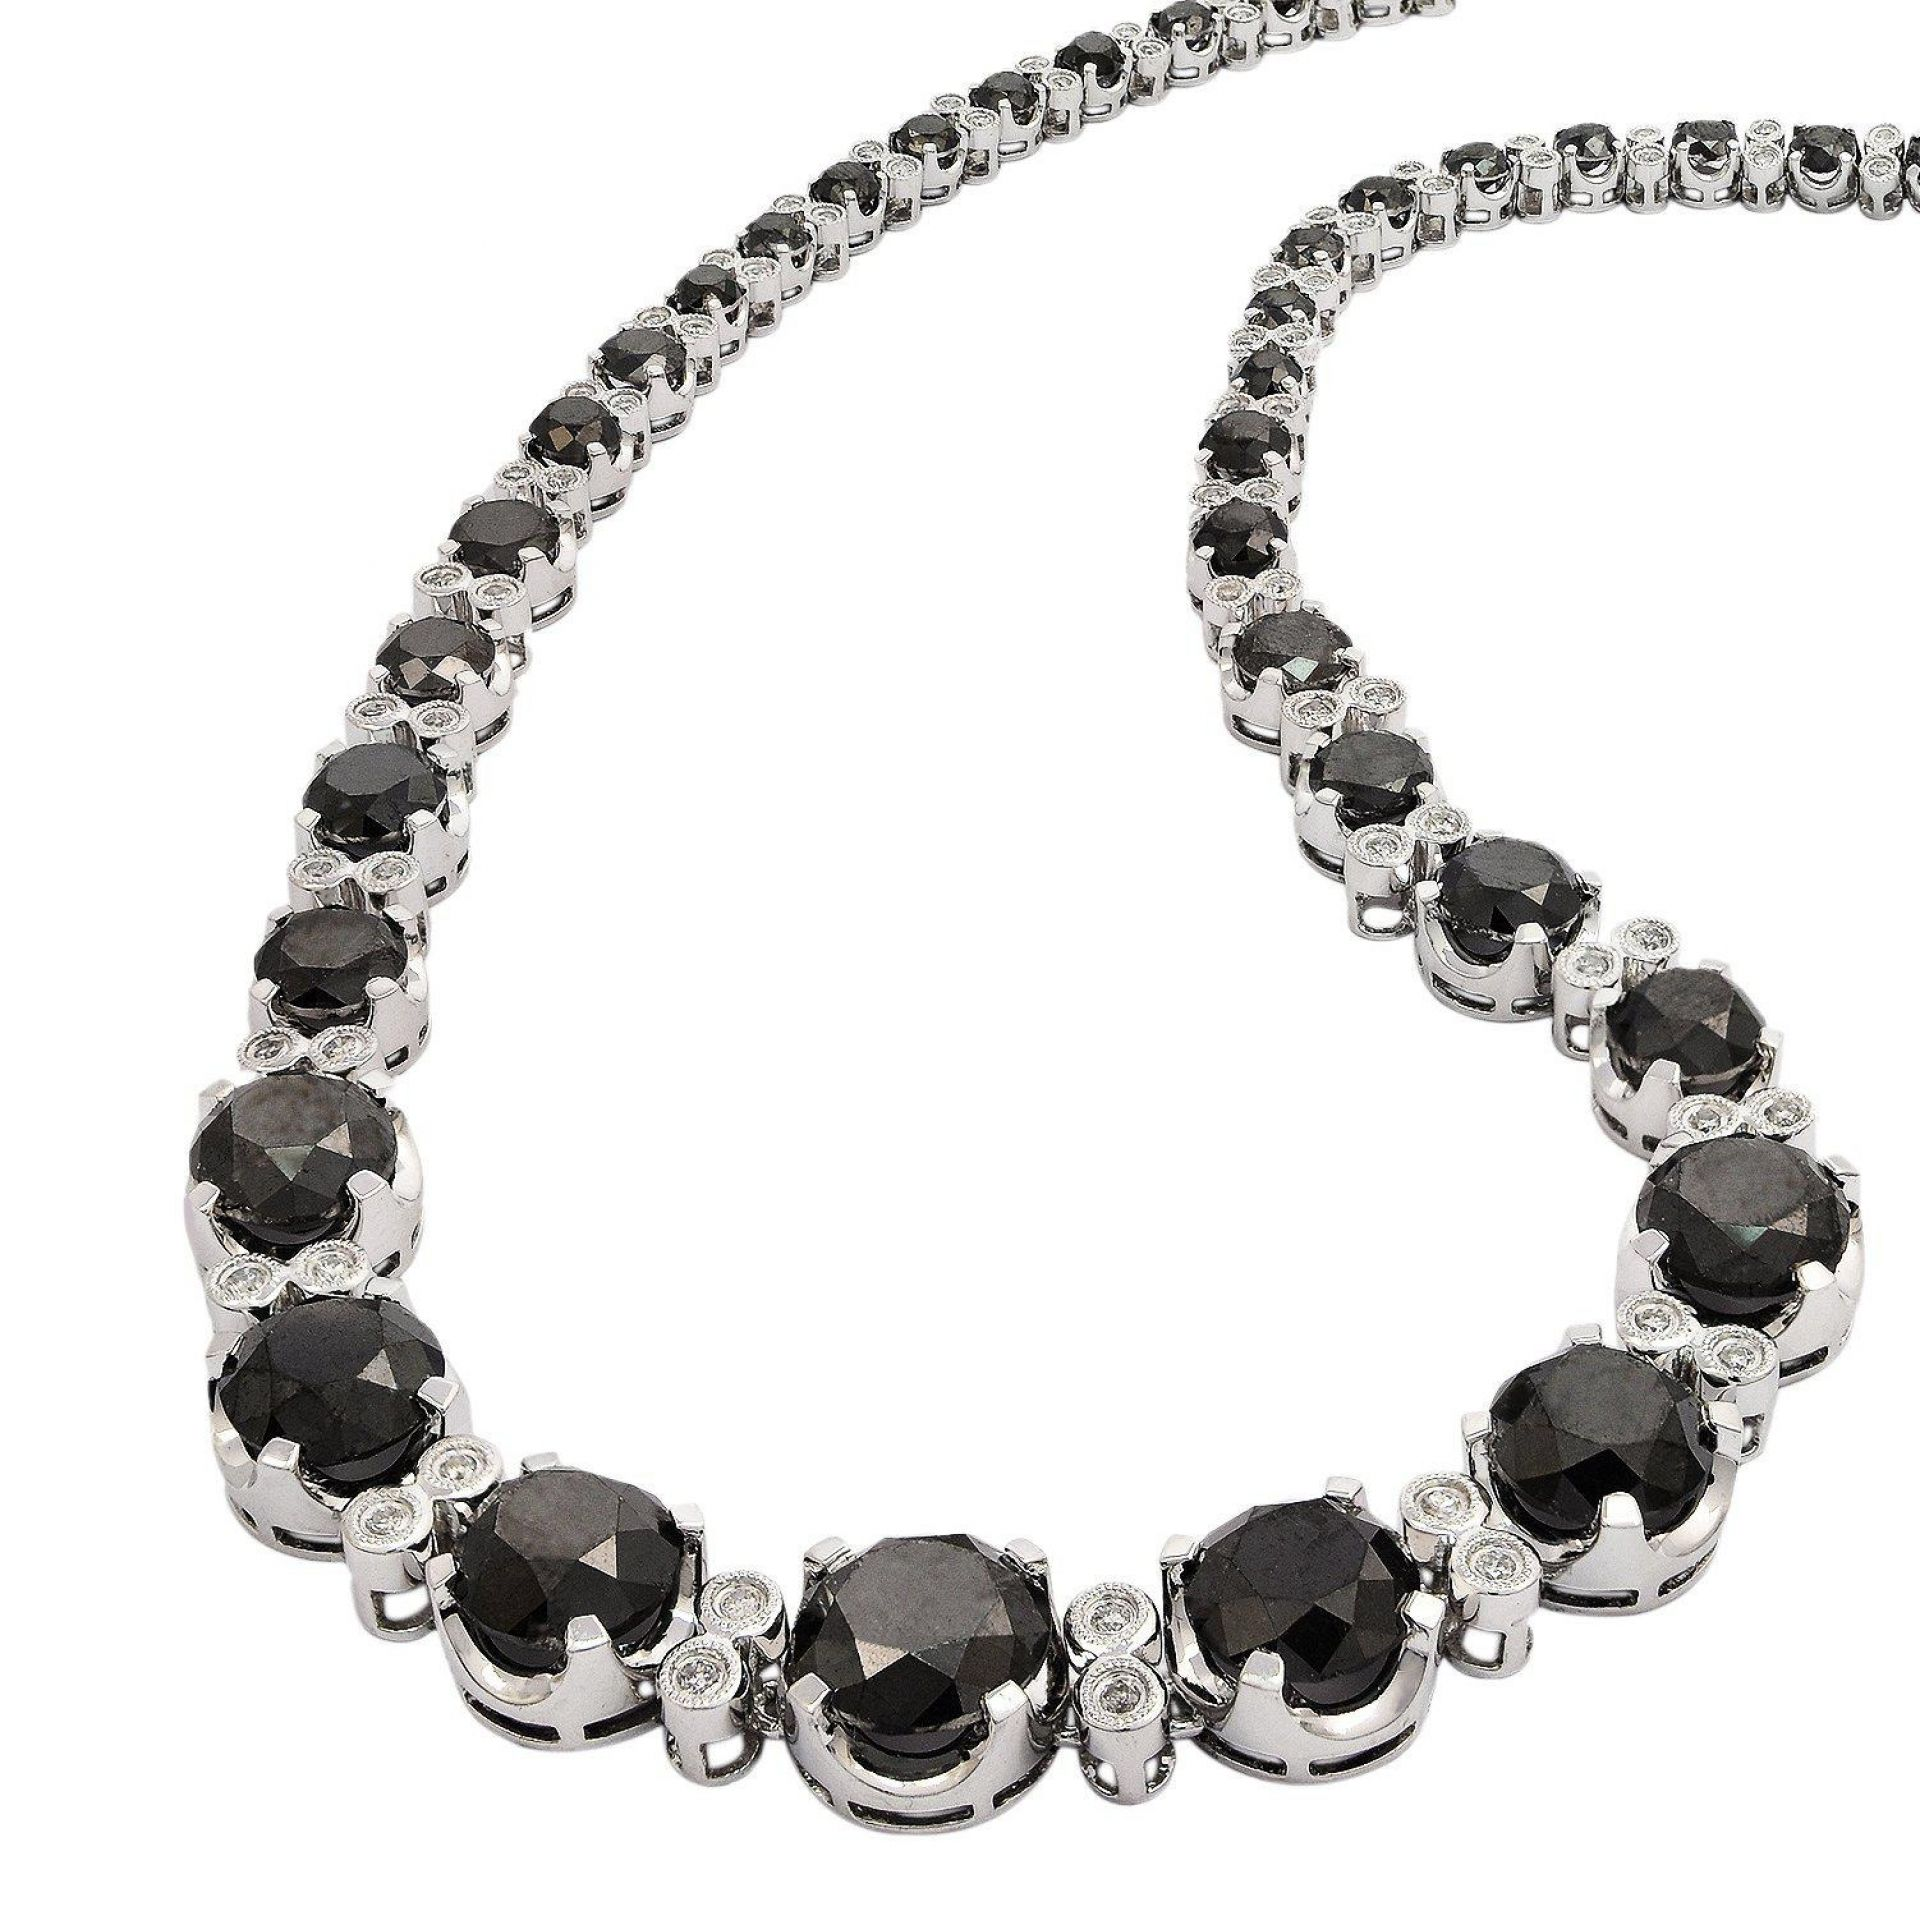 51.17ctw Black and 1.45ctw White Diamond 14KT White Gold Necklace